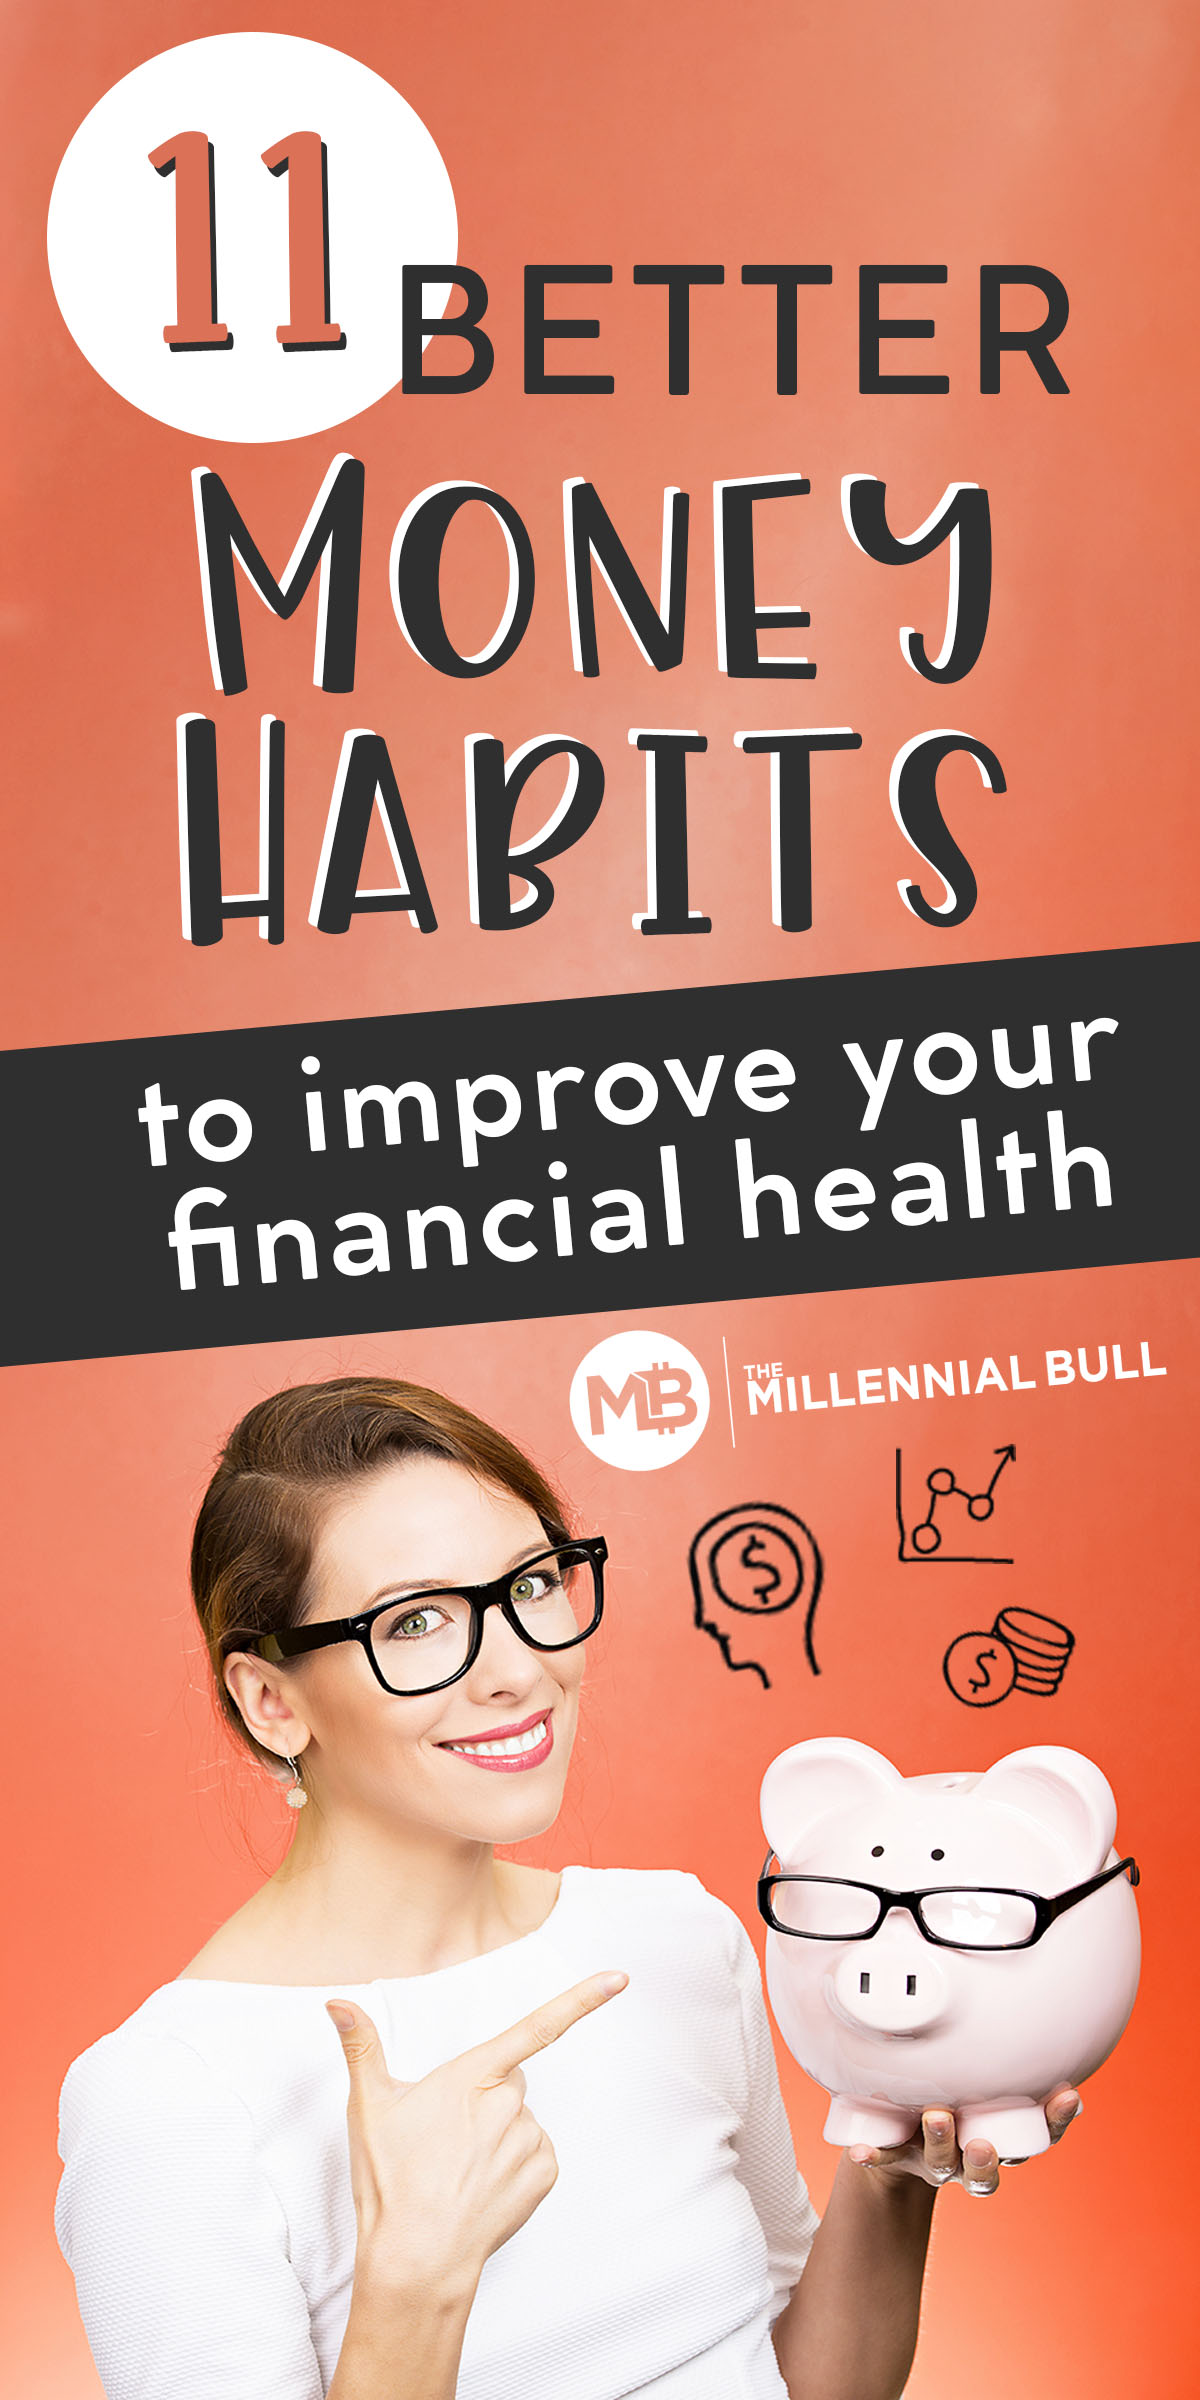 better money habits to improve financial health pin - 11 Better Money Habits For Financial Health